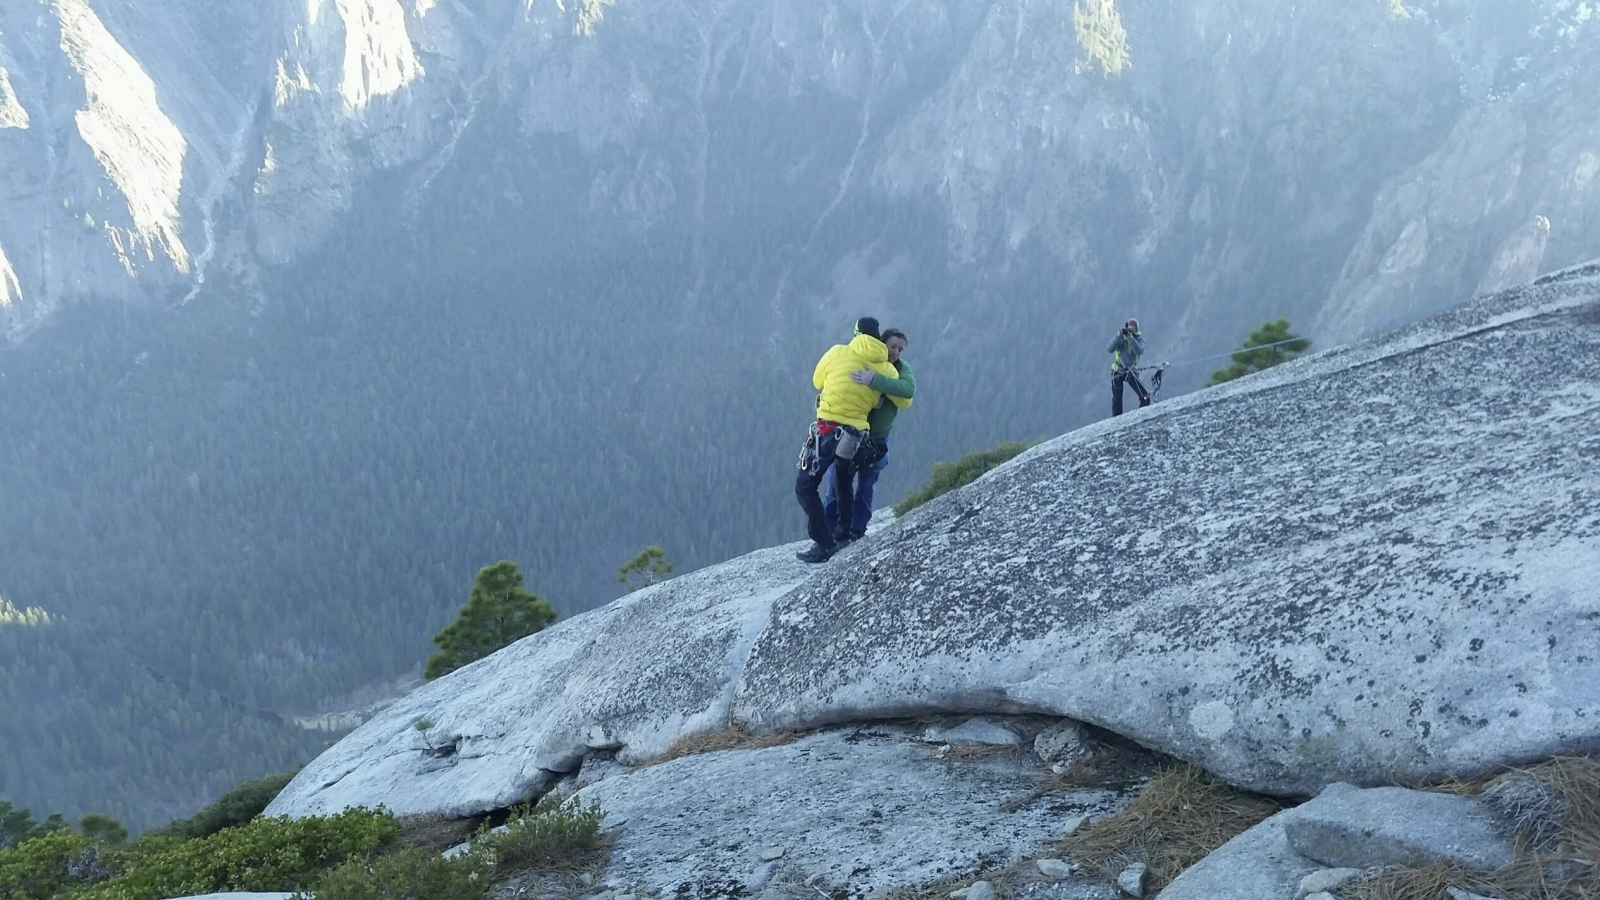 Yosemite free climbers first to succeed in scaling El Capitan